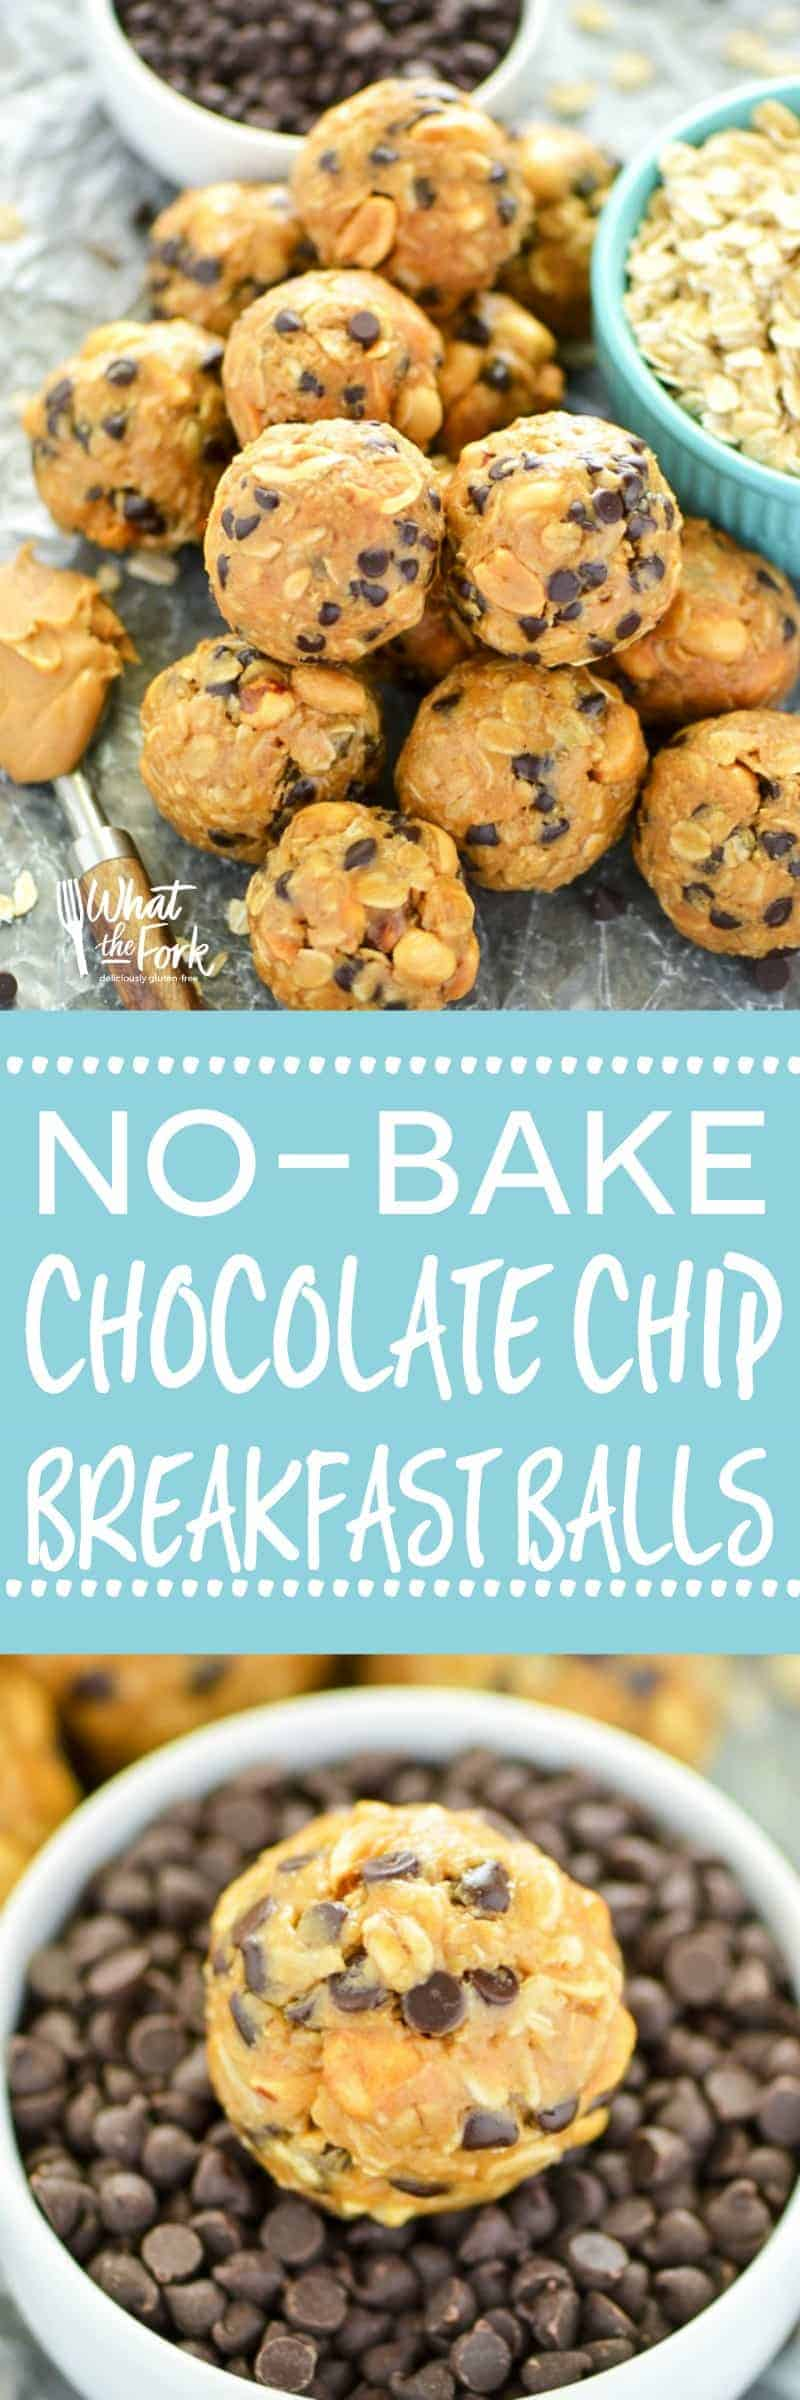 No-Bake Chocolate Chip Breakfast Balls - great for quick breakfasts for busy mornings and great for snacking! From the Easy Gluten Free cookbook. | @whattheforkblog | whattheforkfoodblog.com | gluten free breakfast recipes | gluten free snacks | no-bake recipes | energy bites | easy snack recipes | after-school snacks | peanut butter recipes | peanut butter balls | easy gluten free recipes | gluten free snack recipes